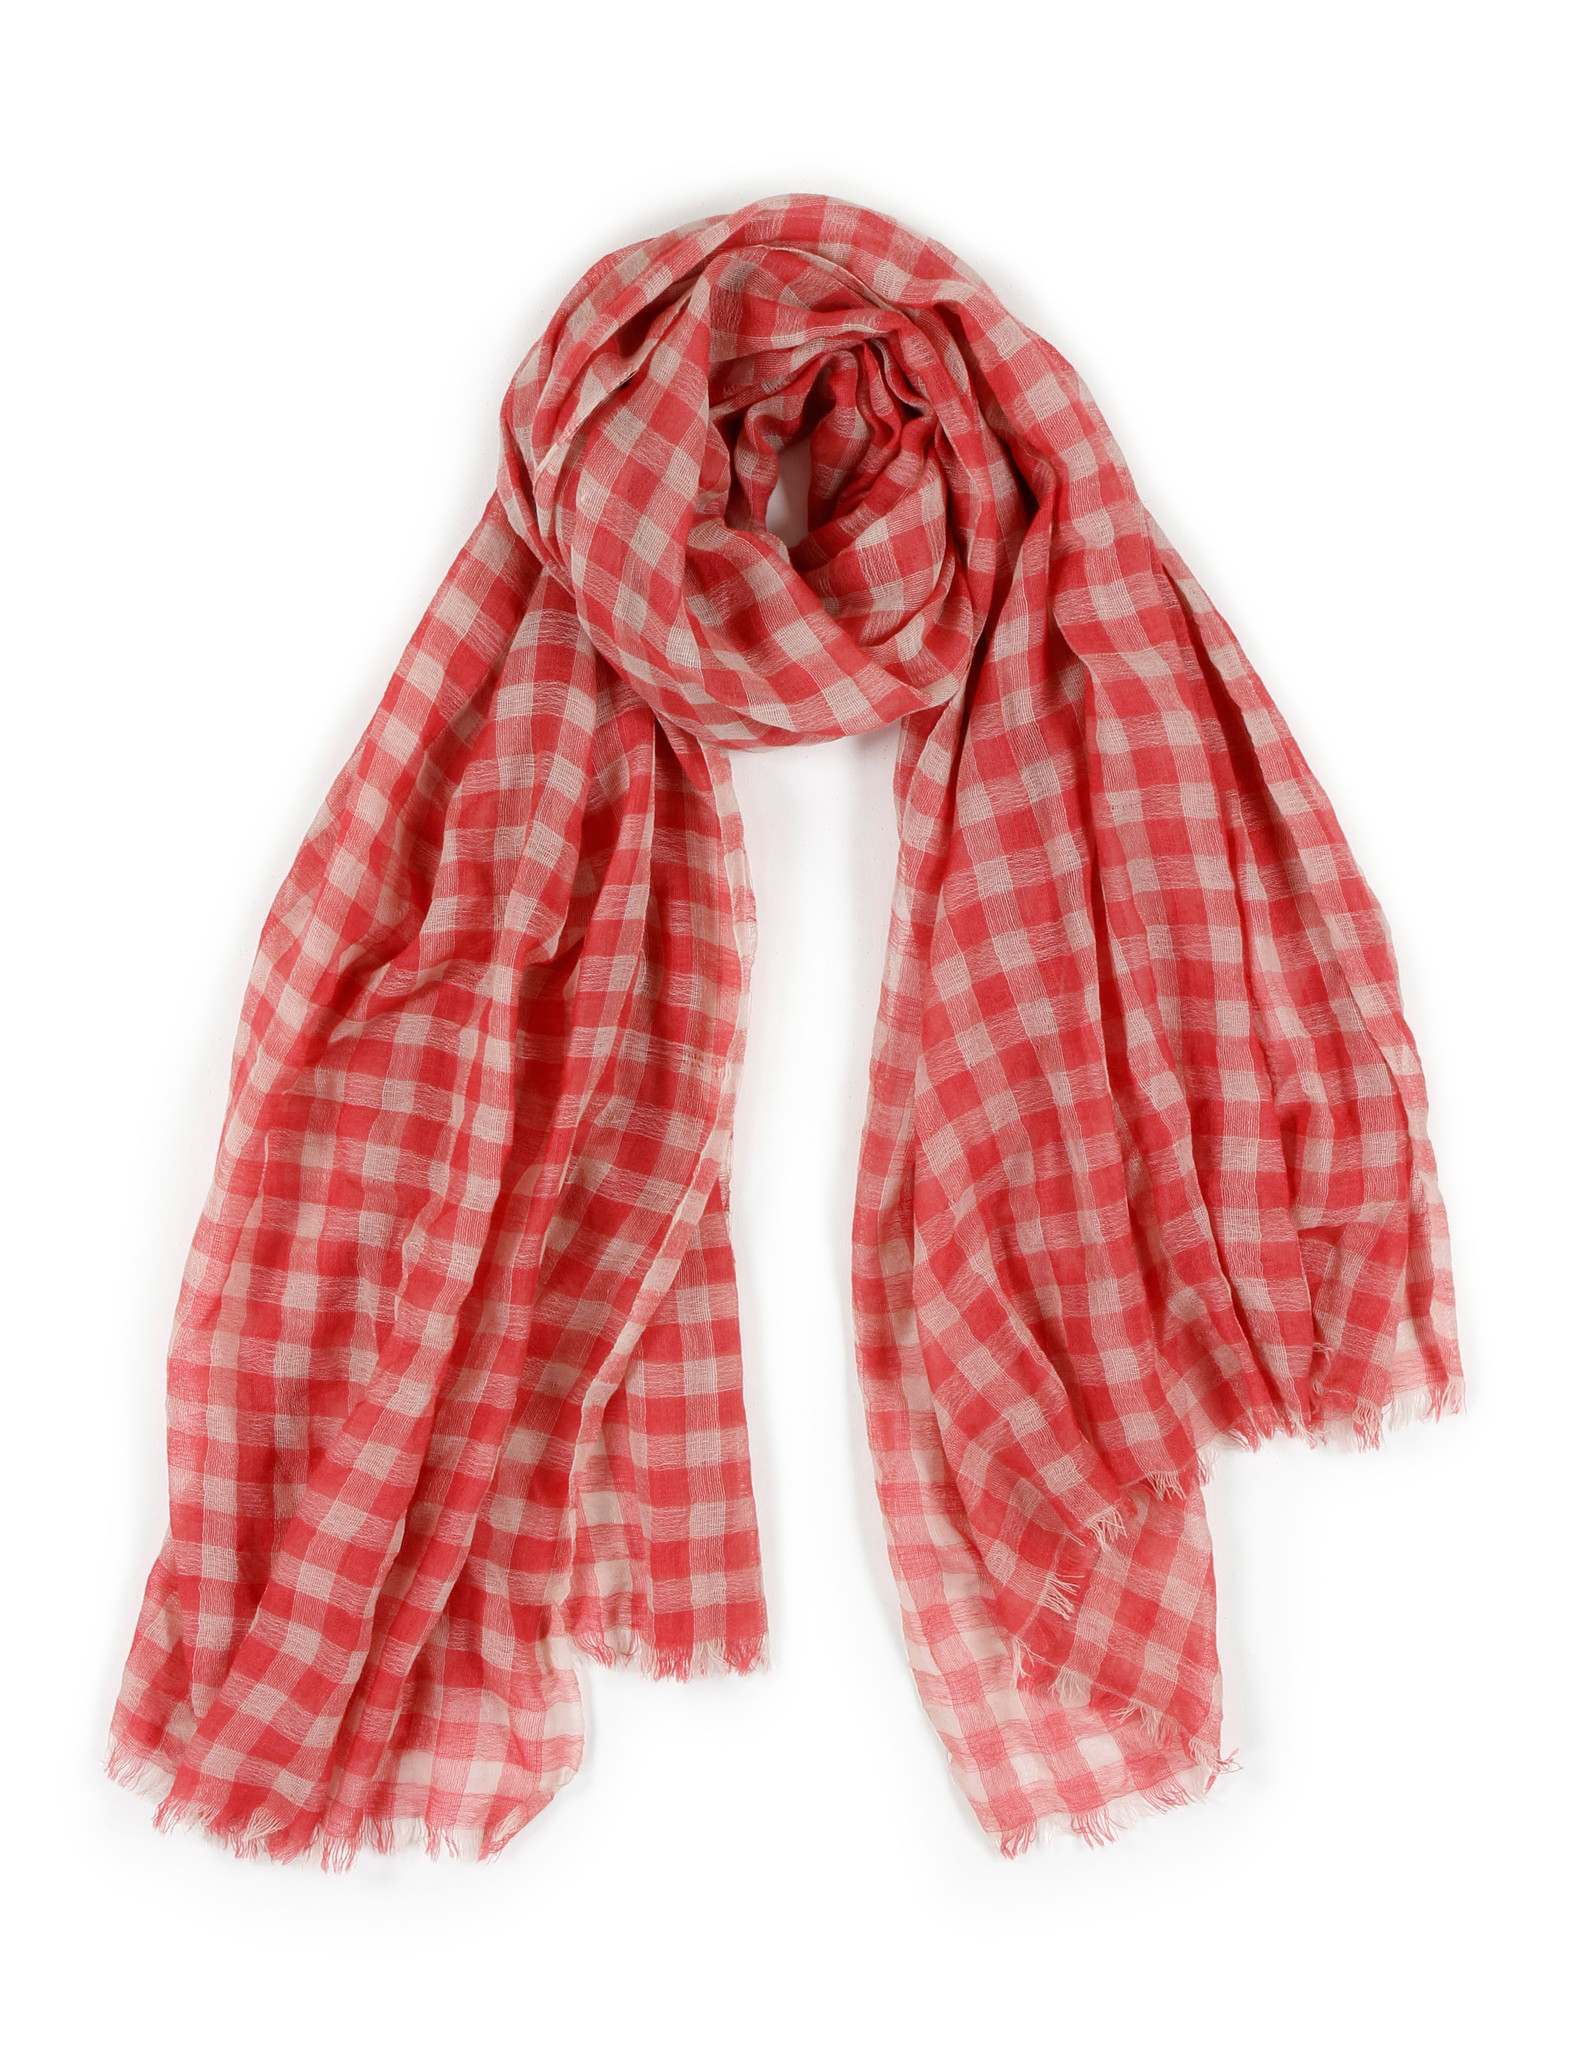 Manuelle Guibal Kuta Check Scarf- multiple colors